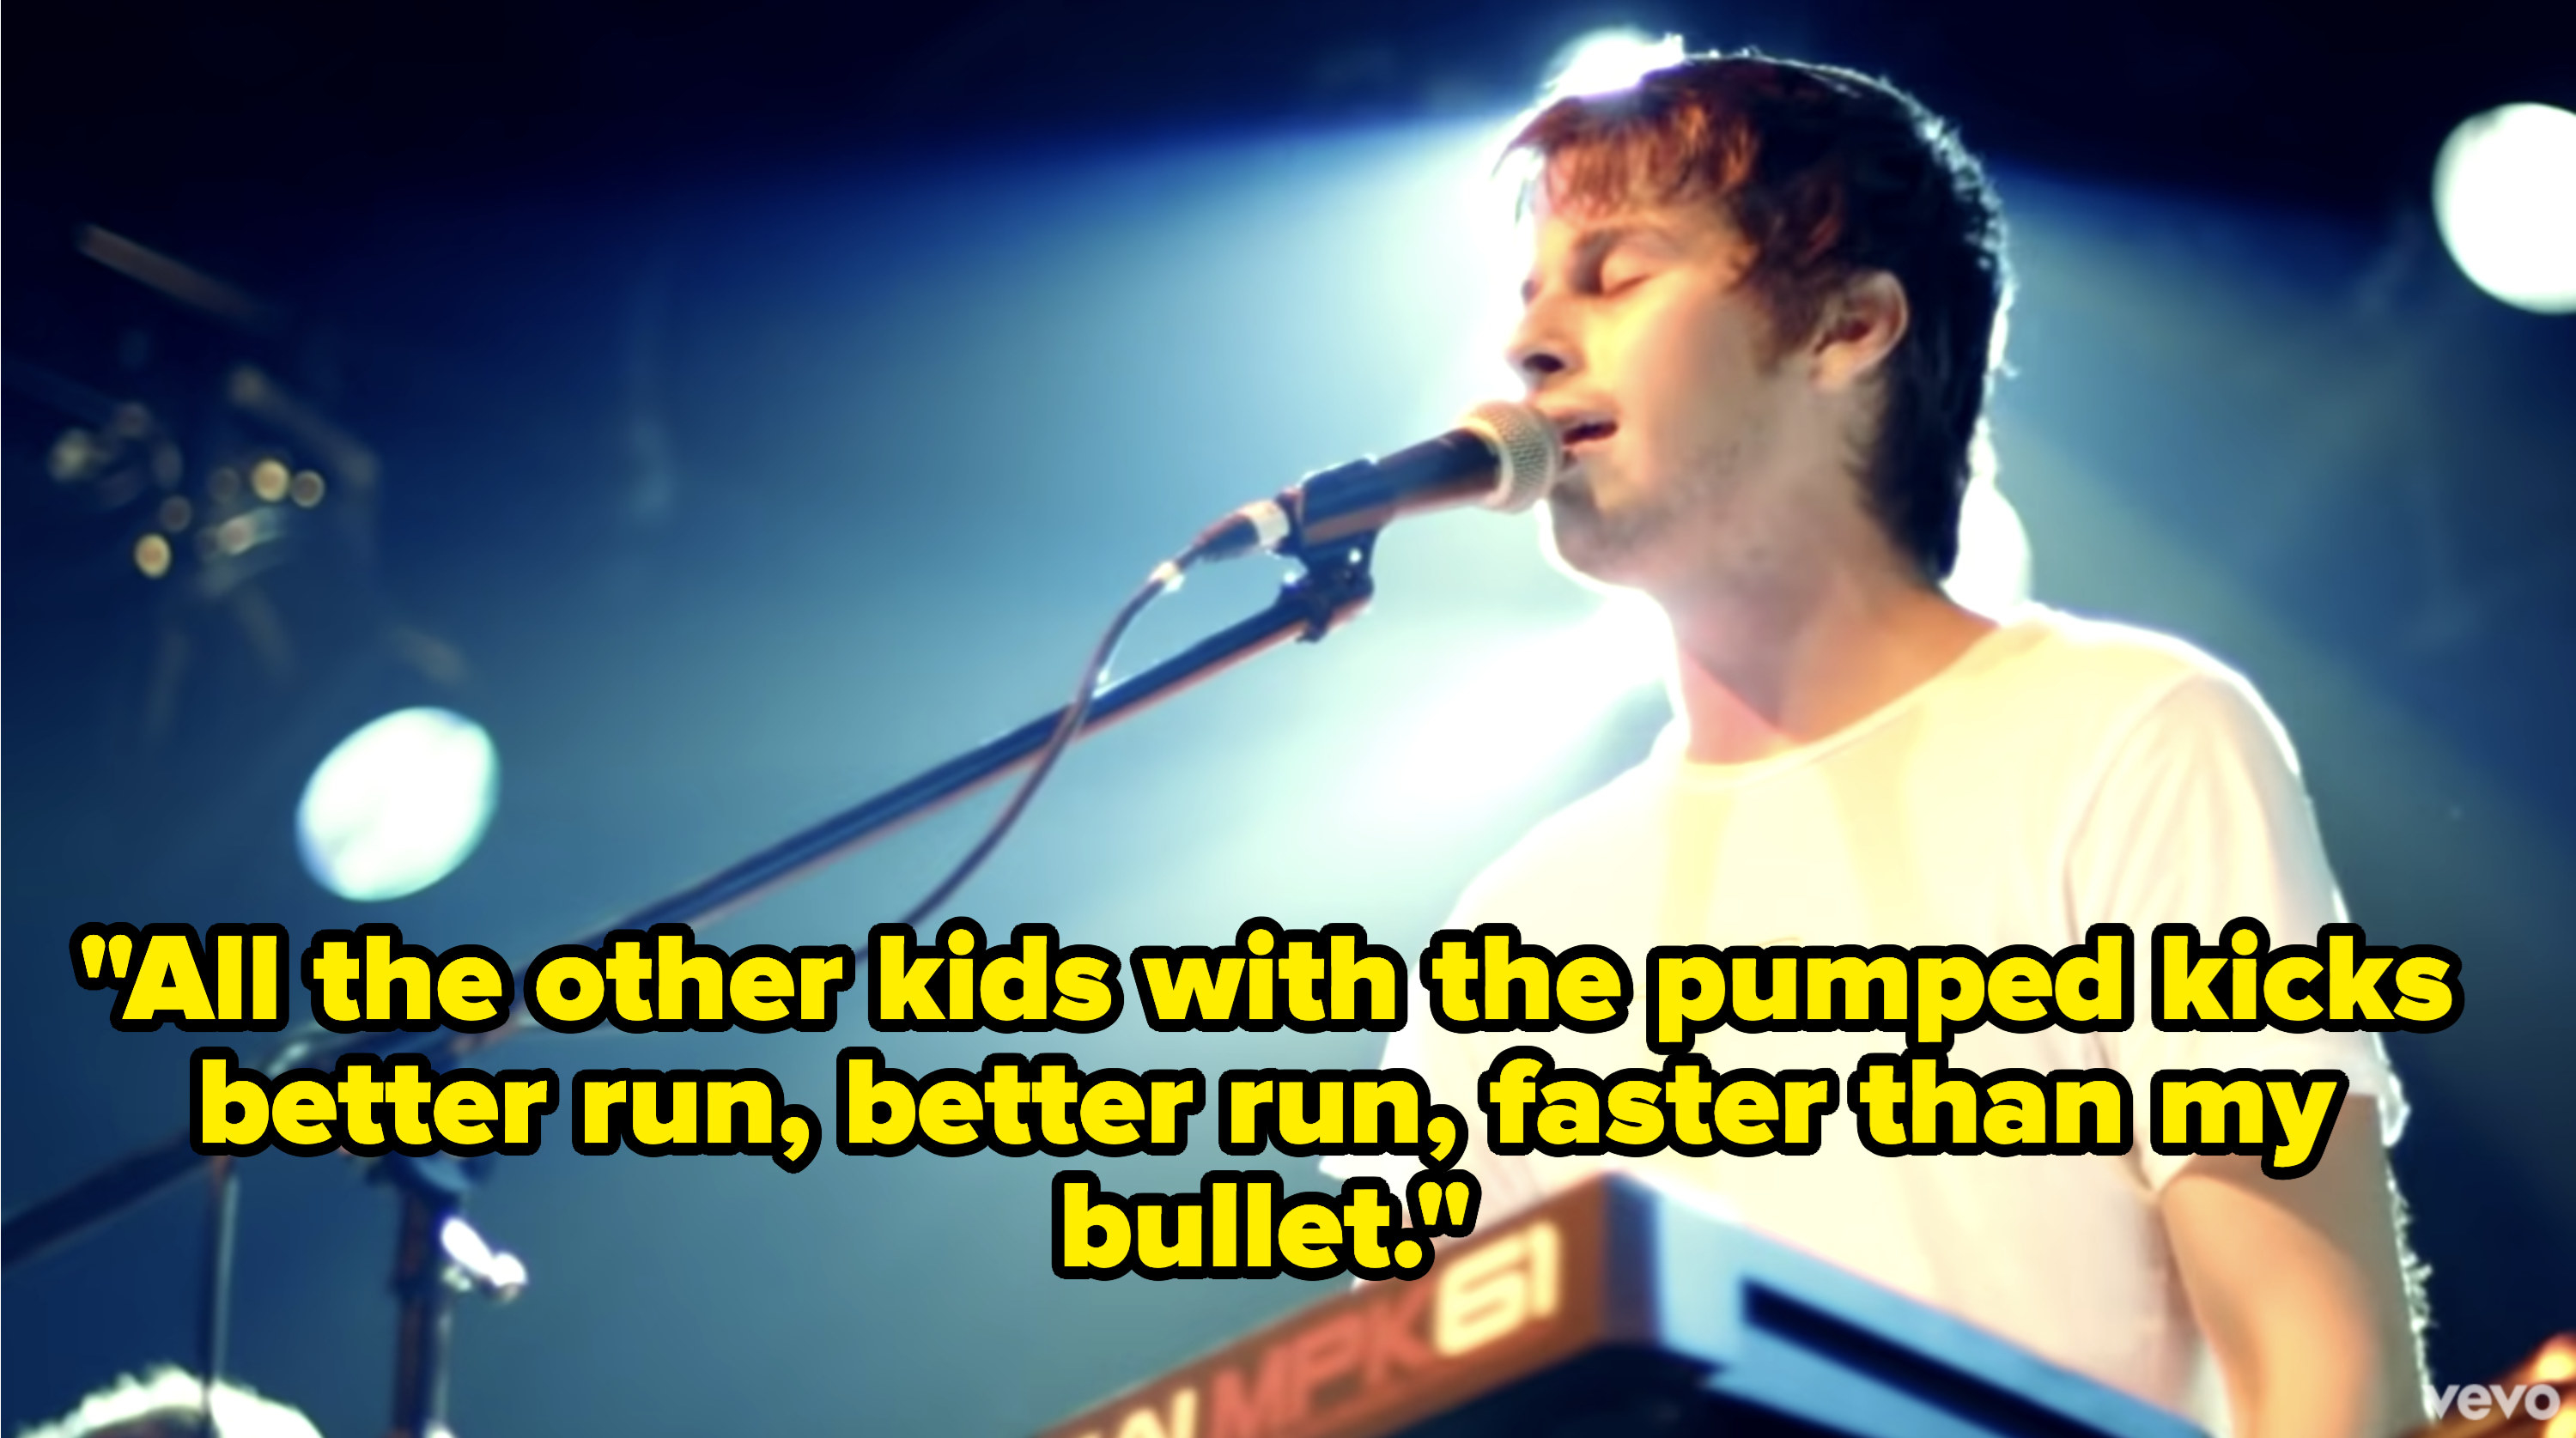 Frontman Mark Foster performing onstage at a concert.